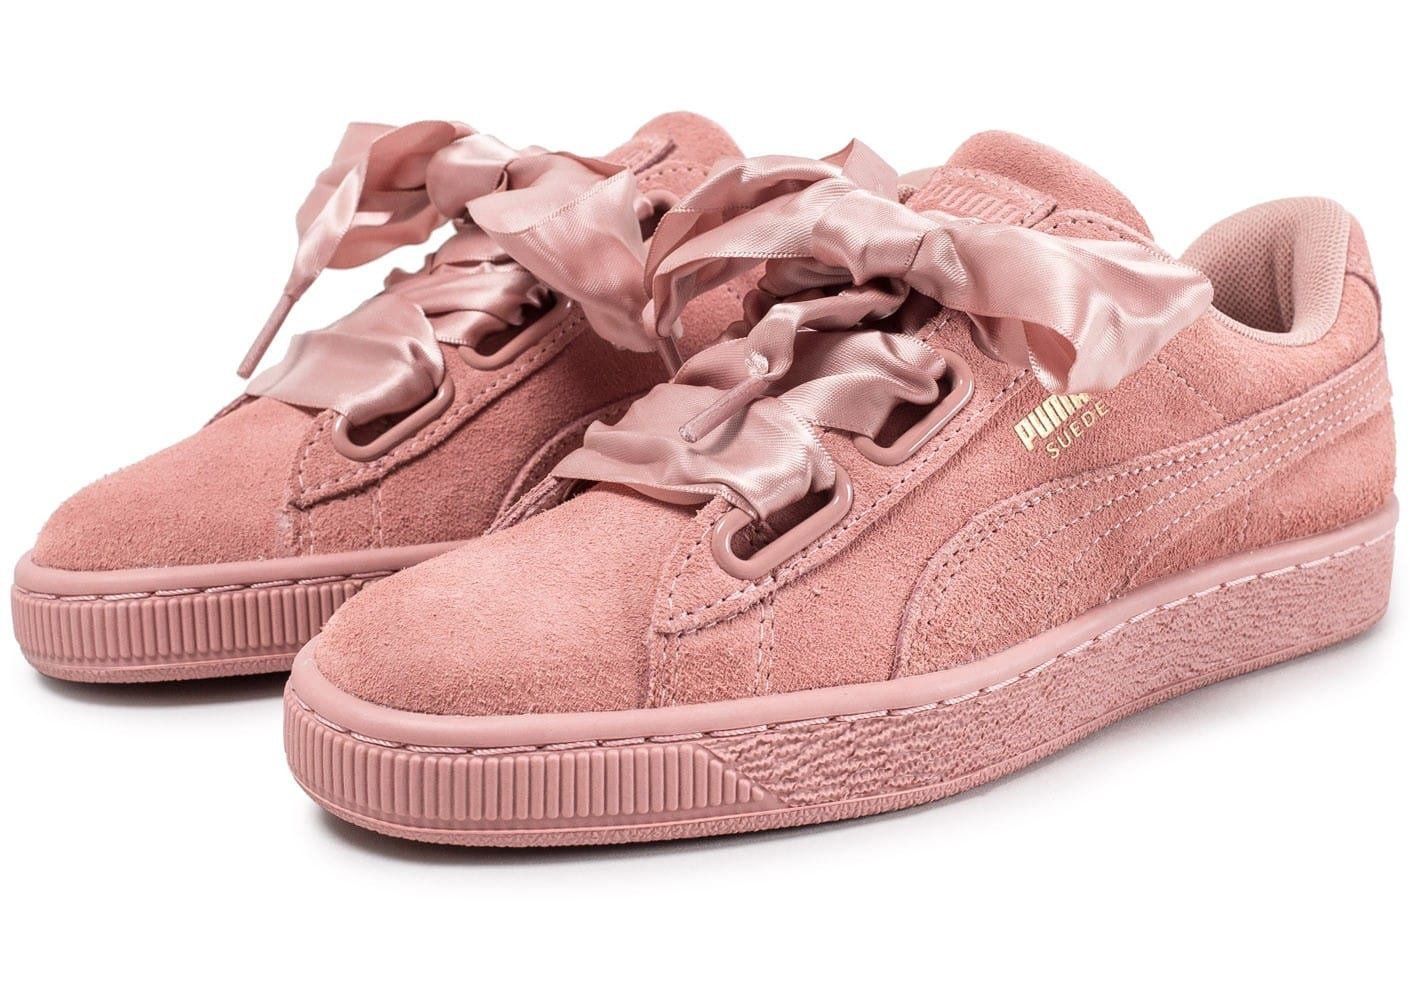 puma rose suede heart